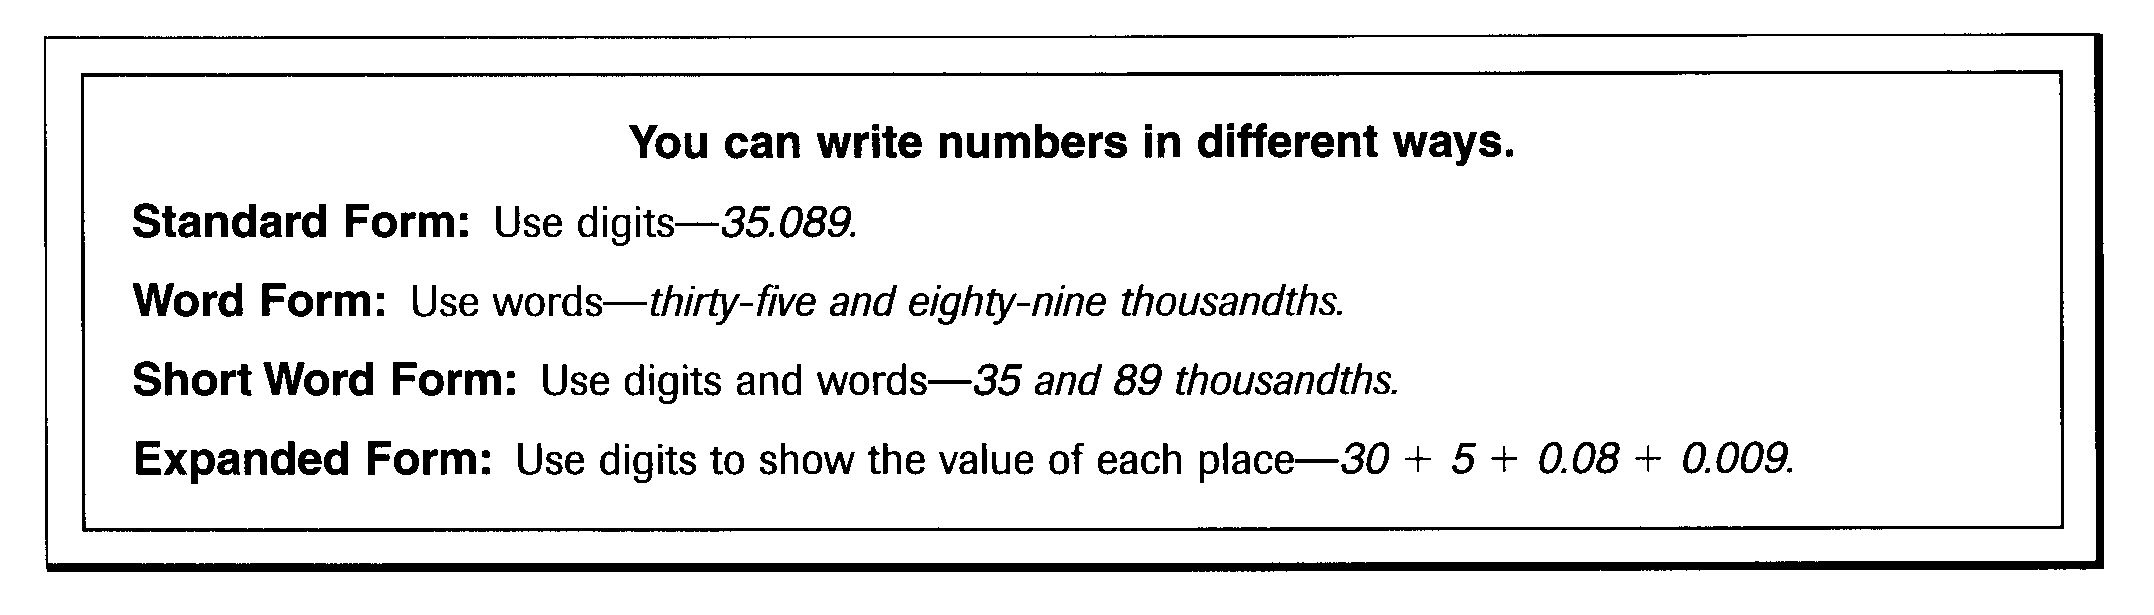 How Do I Write 32,667 In Expanded Form Using Exponents?